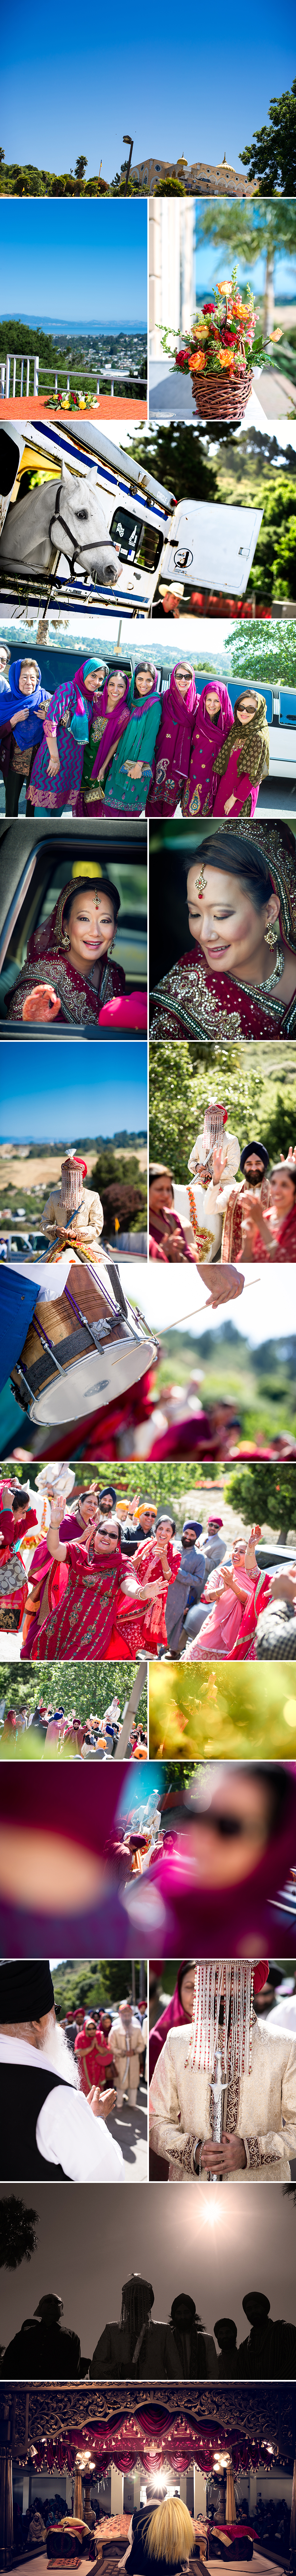 Indian Sikh wedding El Sobrante Gurudwara